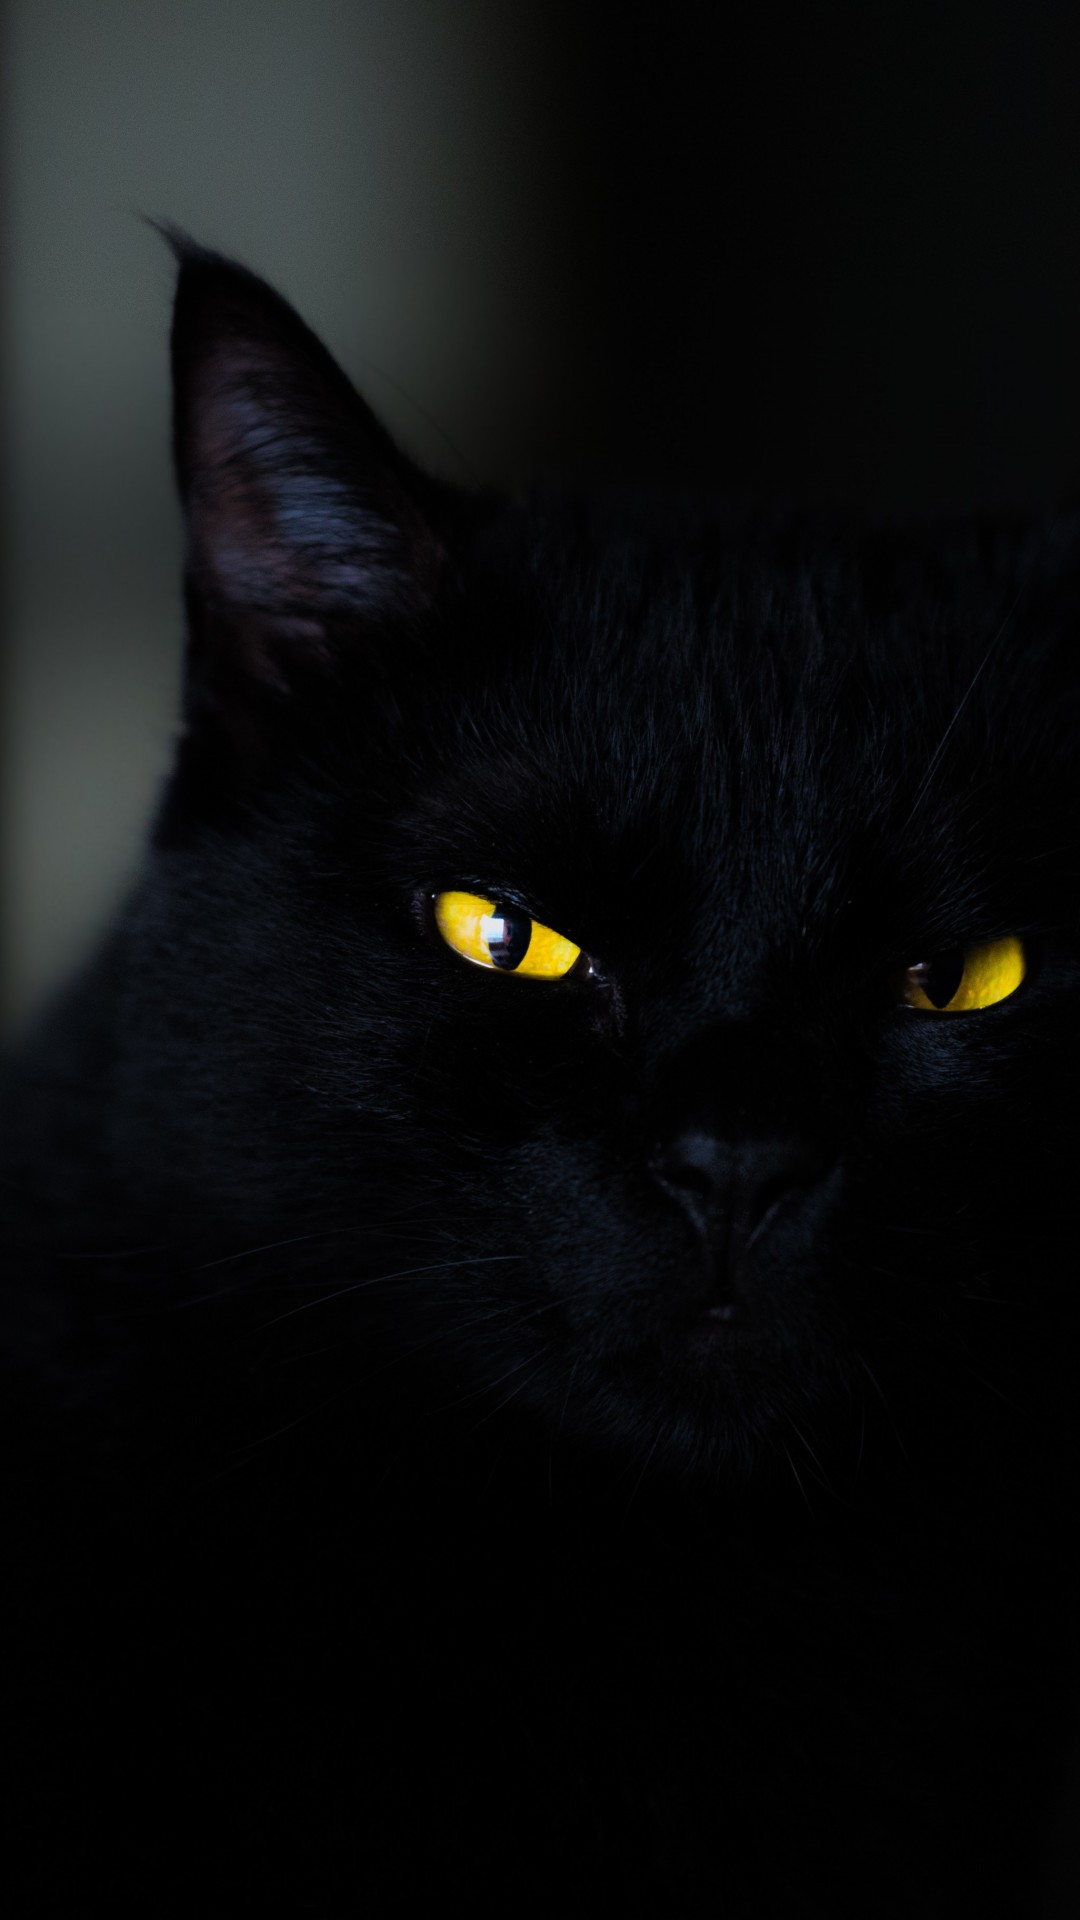 Wallpaper Cat Black Yellow Eyes 4k Animals 19934